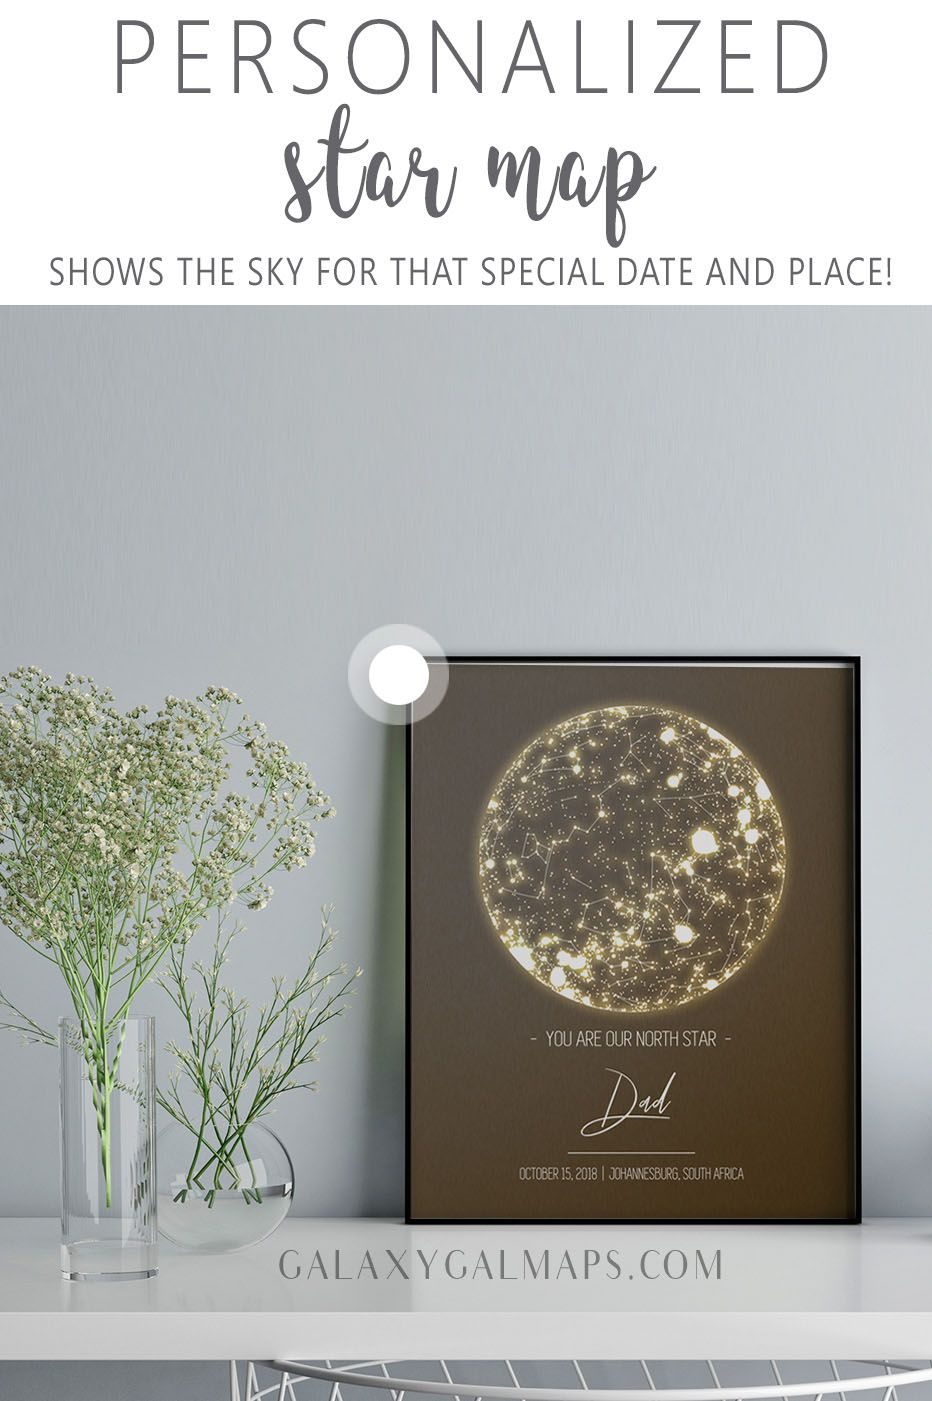 Create Your Star Chart by Date  - photography, Gift For, 20Th Anniversary, Illinois Wall Art, Mothers Day Star Map, Alternative CanvasNewborn Baby, Constellation Sky, New Mexico Wedding, Positive Quote Print, Dallas Skyline, #GiftFor #20ThAnniversary #IllinoisWallArt #MothersDayStarMap #AlternativeCanvasNewbornBaby #ConstellationSky #NewMexicoWedding #PositiveQuotePrint #DallasSkyline #20thanniversarywedding